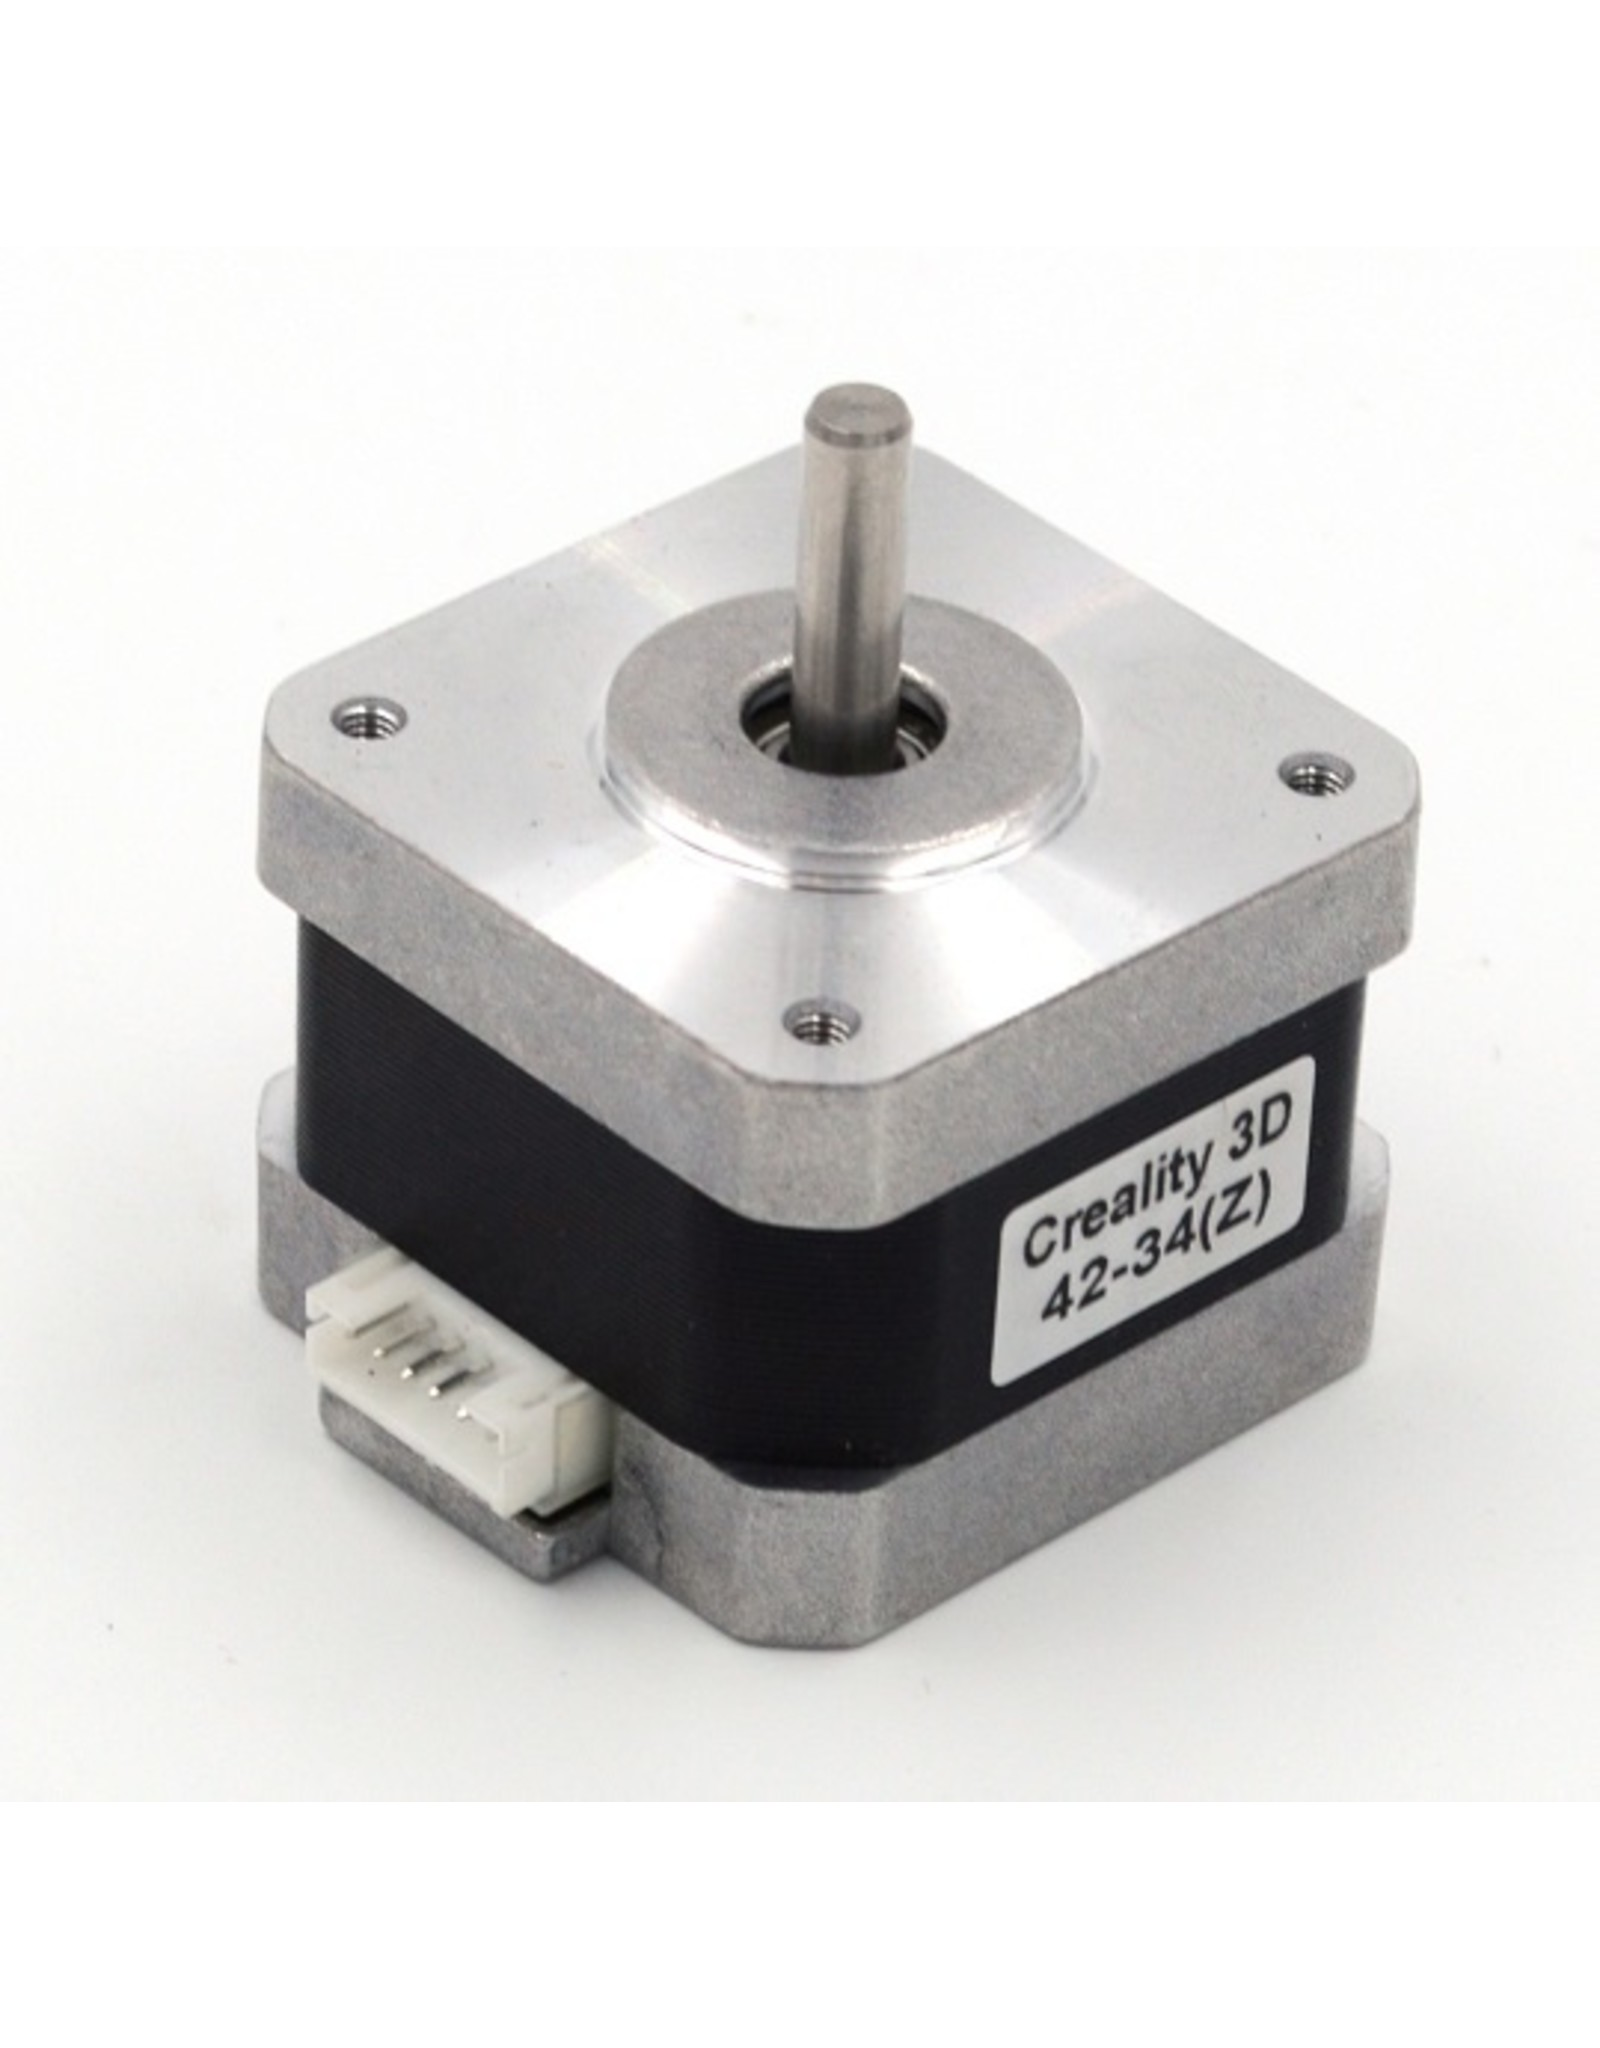 Creality/Ender Creality 3D-stappenmotor 42-34 - met rond as